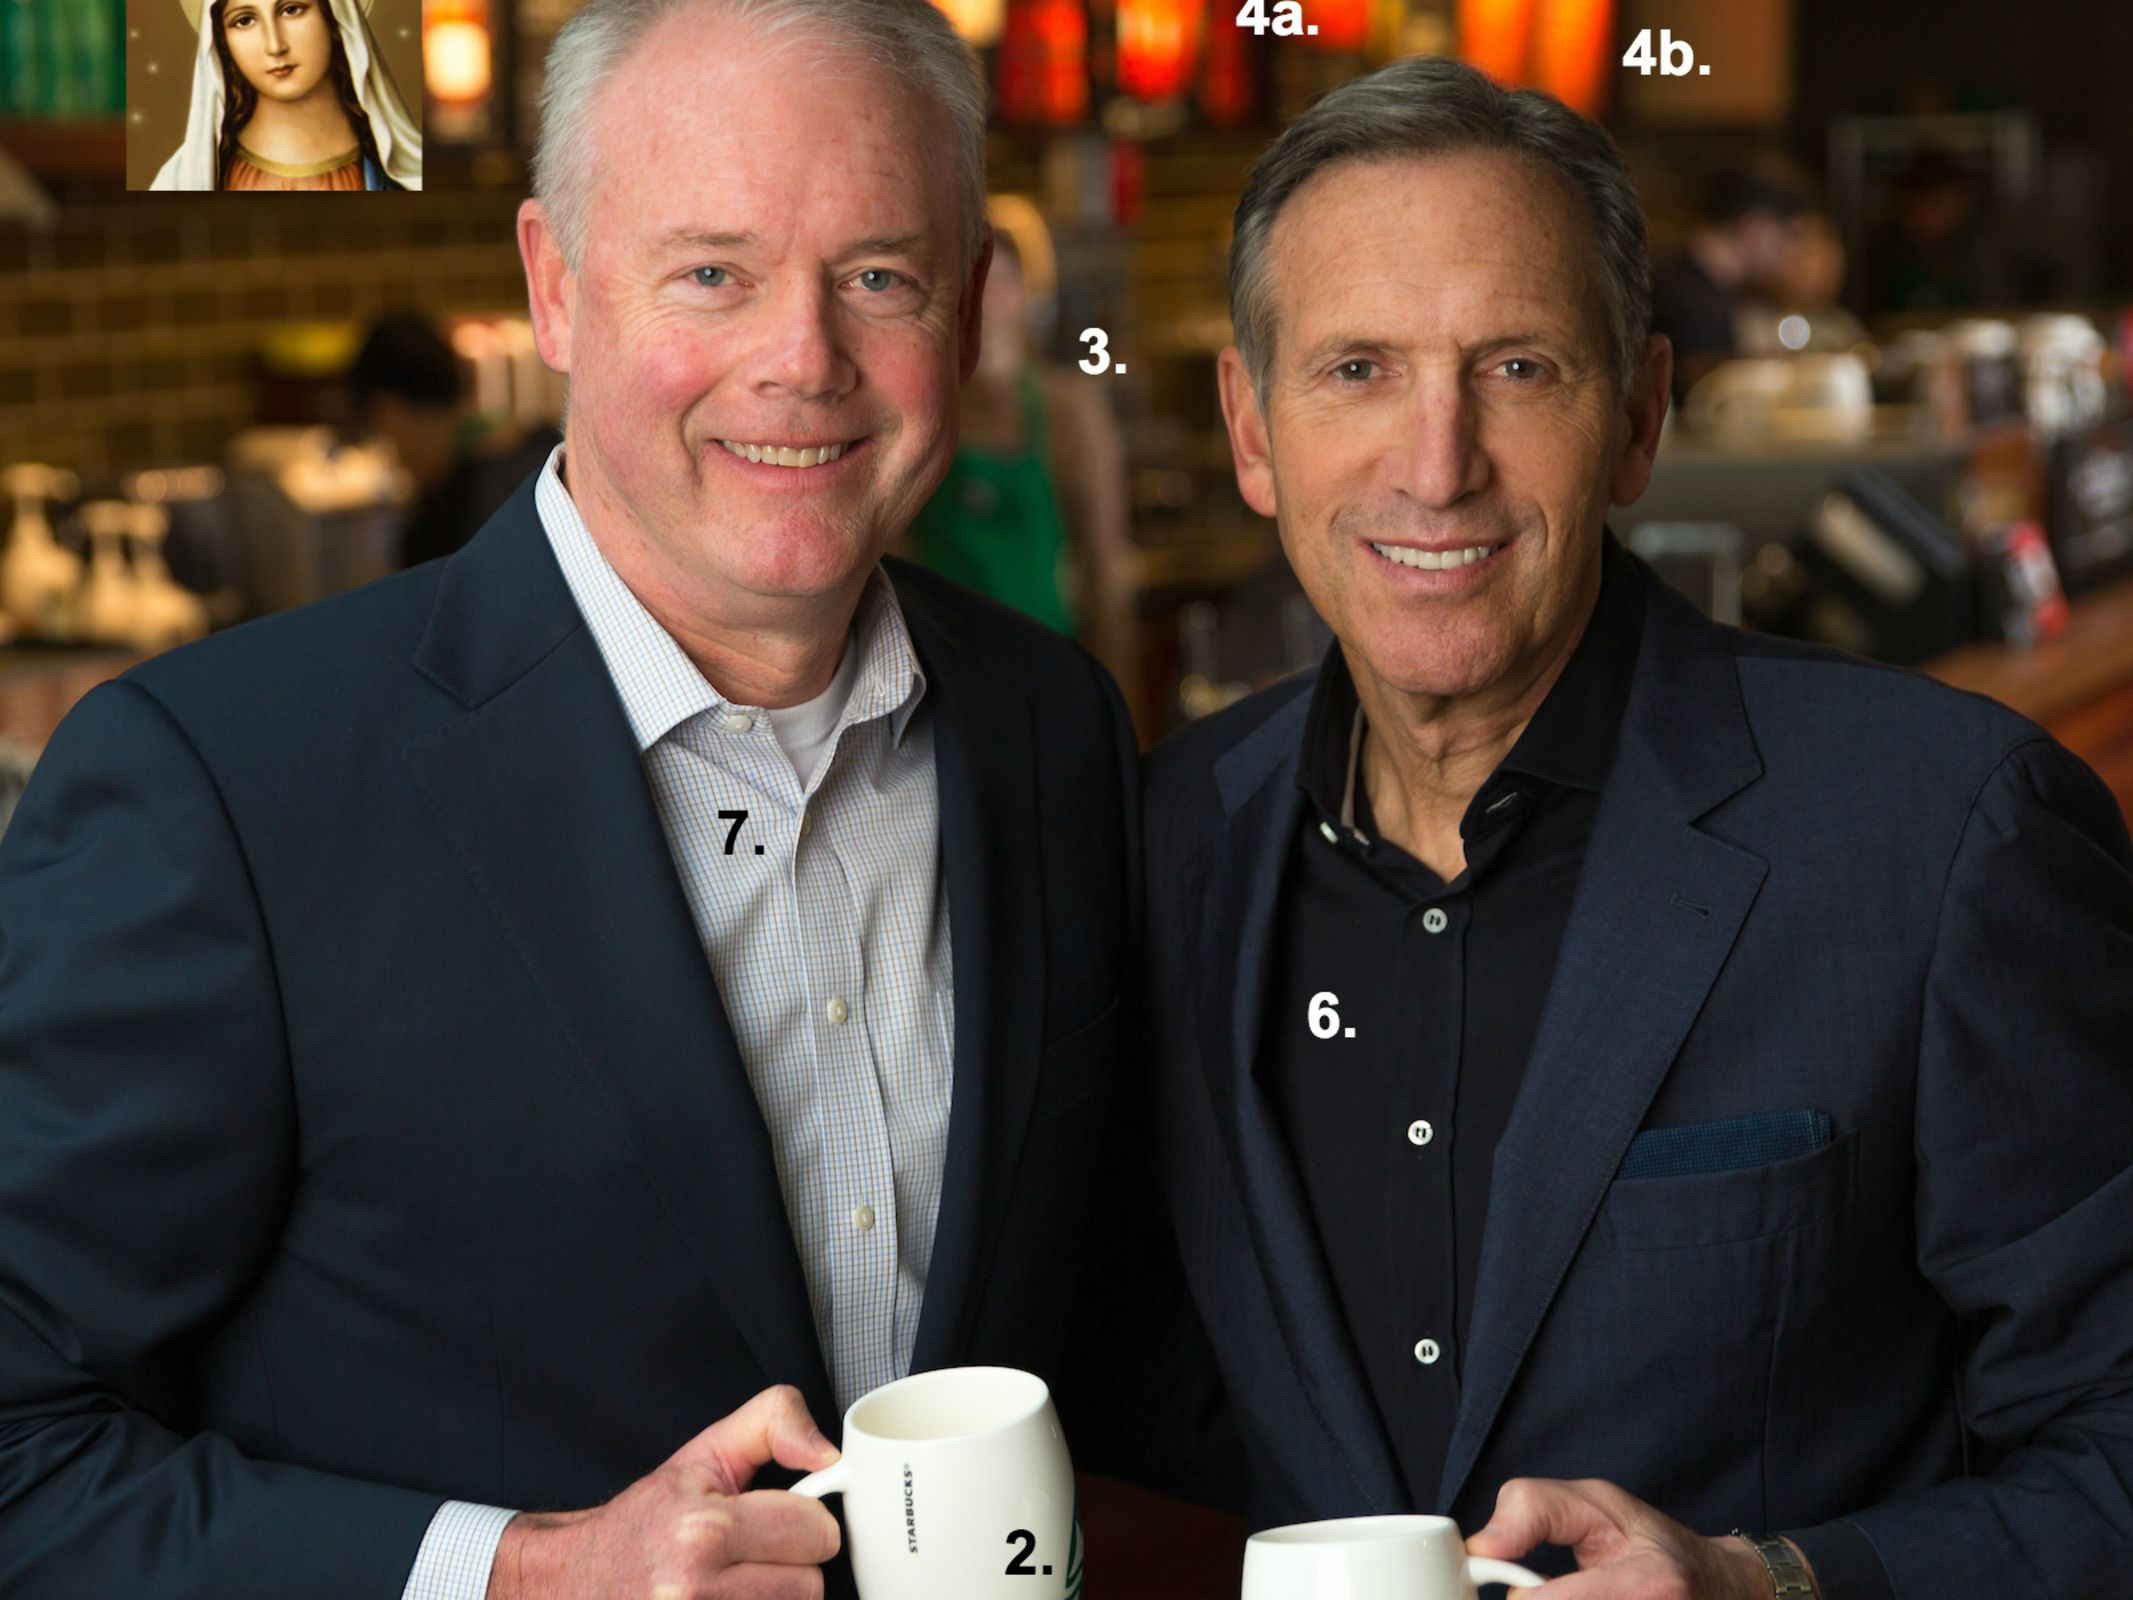 Howard schultz and kevin johnson  edit  gyia6o